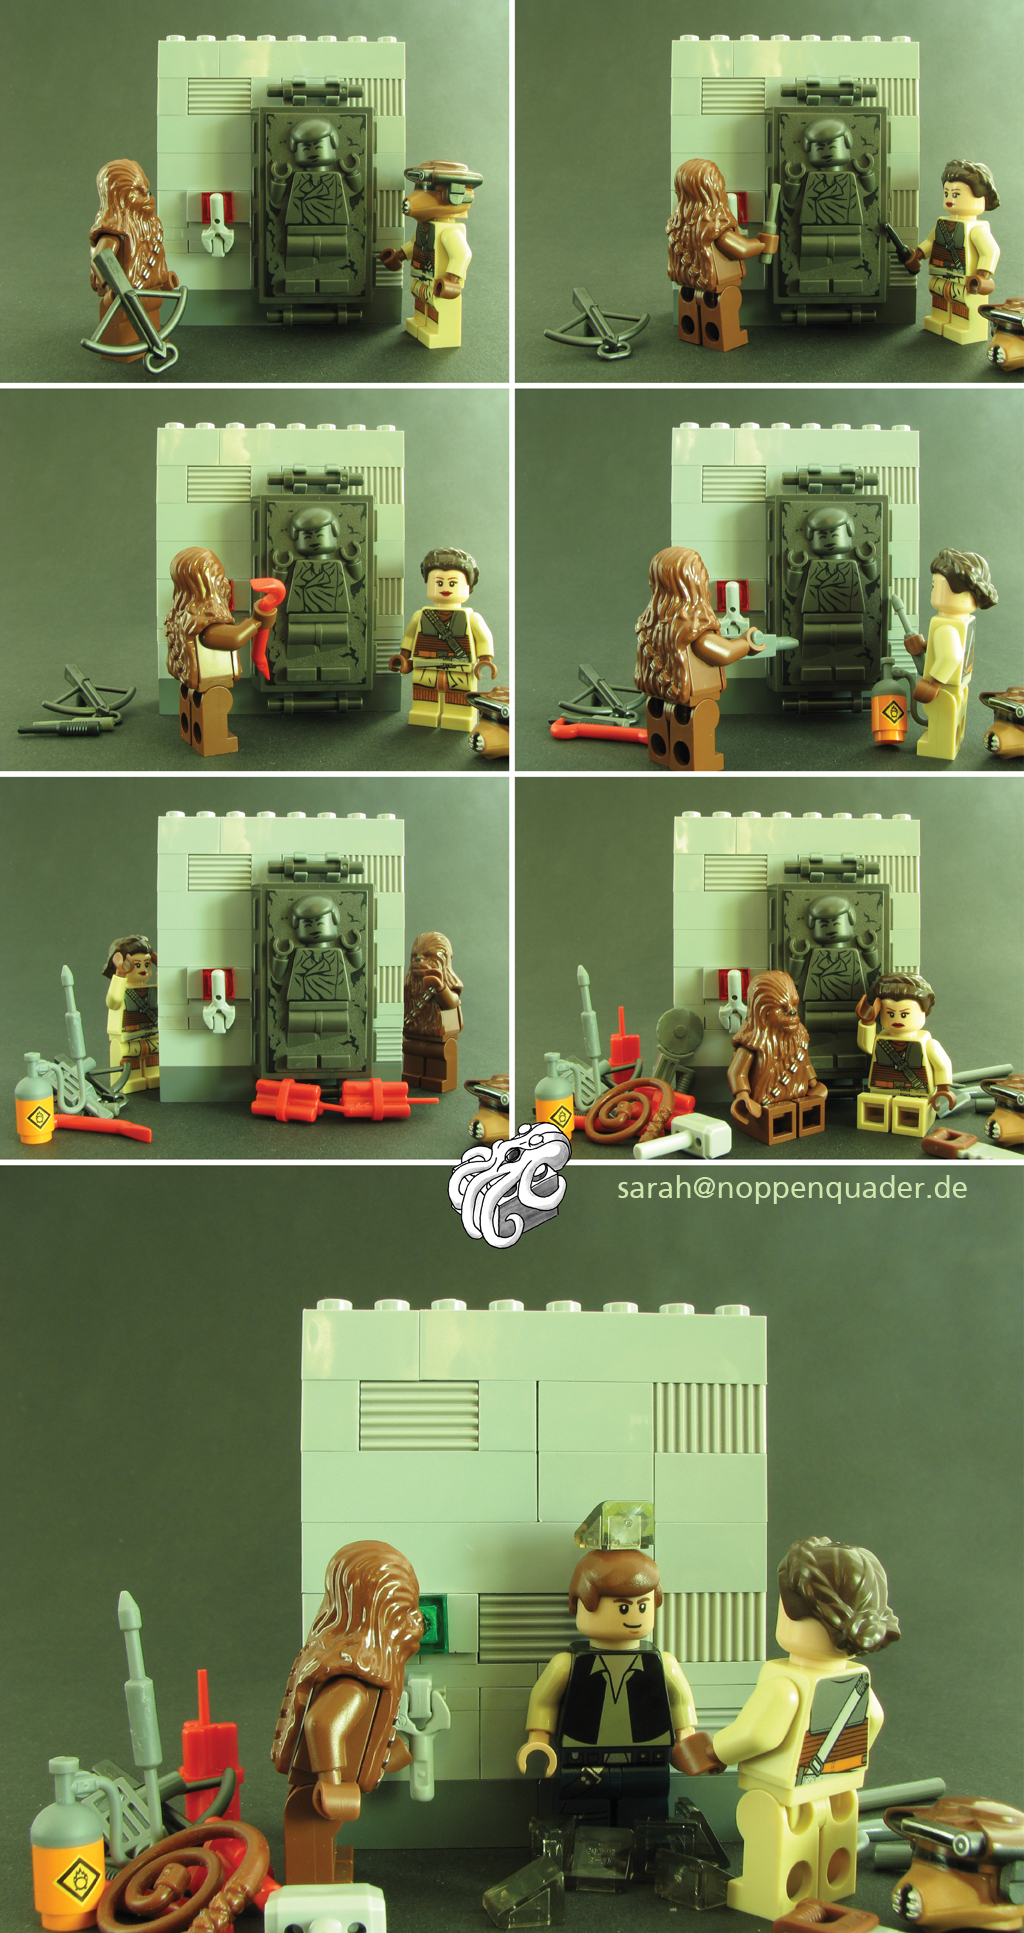 lego minifig noppenquader moc star wars stormtrooper christmas carbonite han solo leia chewie